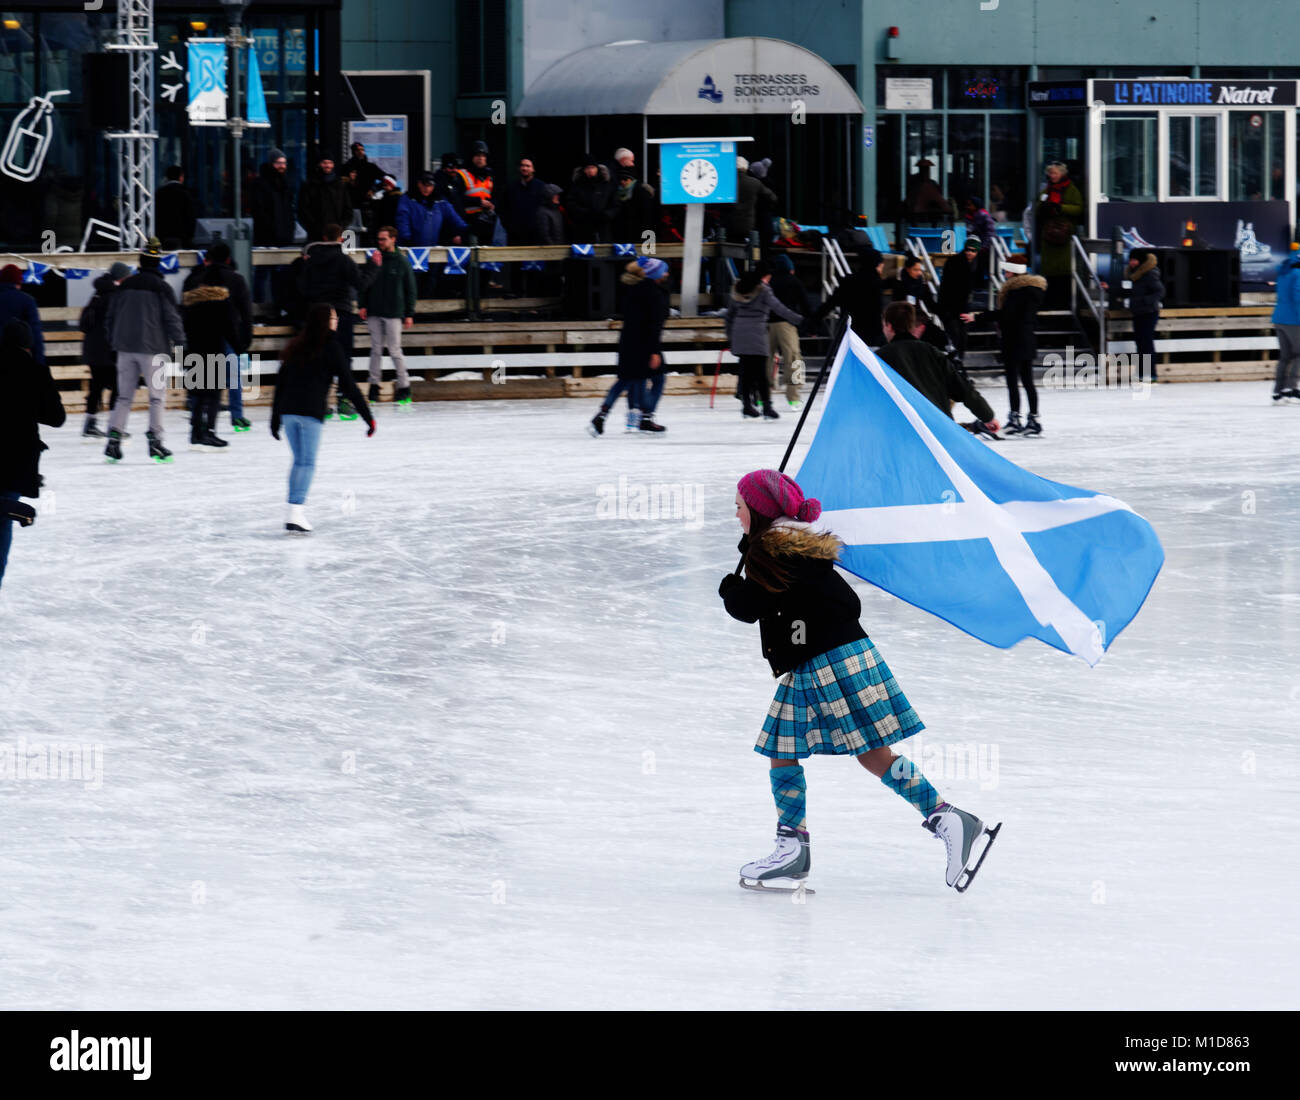 A skater in Montreal Old Port flying the Saltire, celebrating their Scottish ancestry in the annual Great Canadian - Stock Image